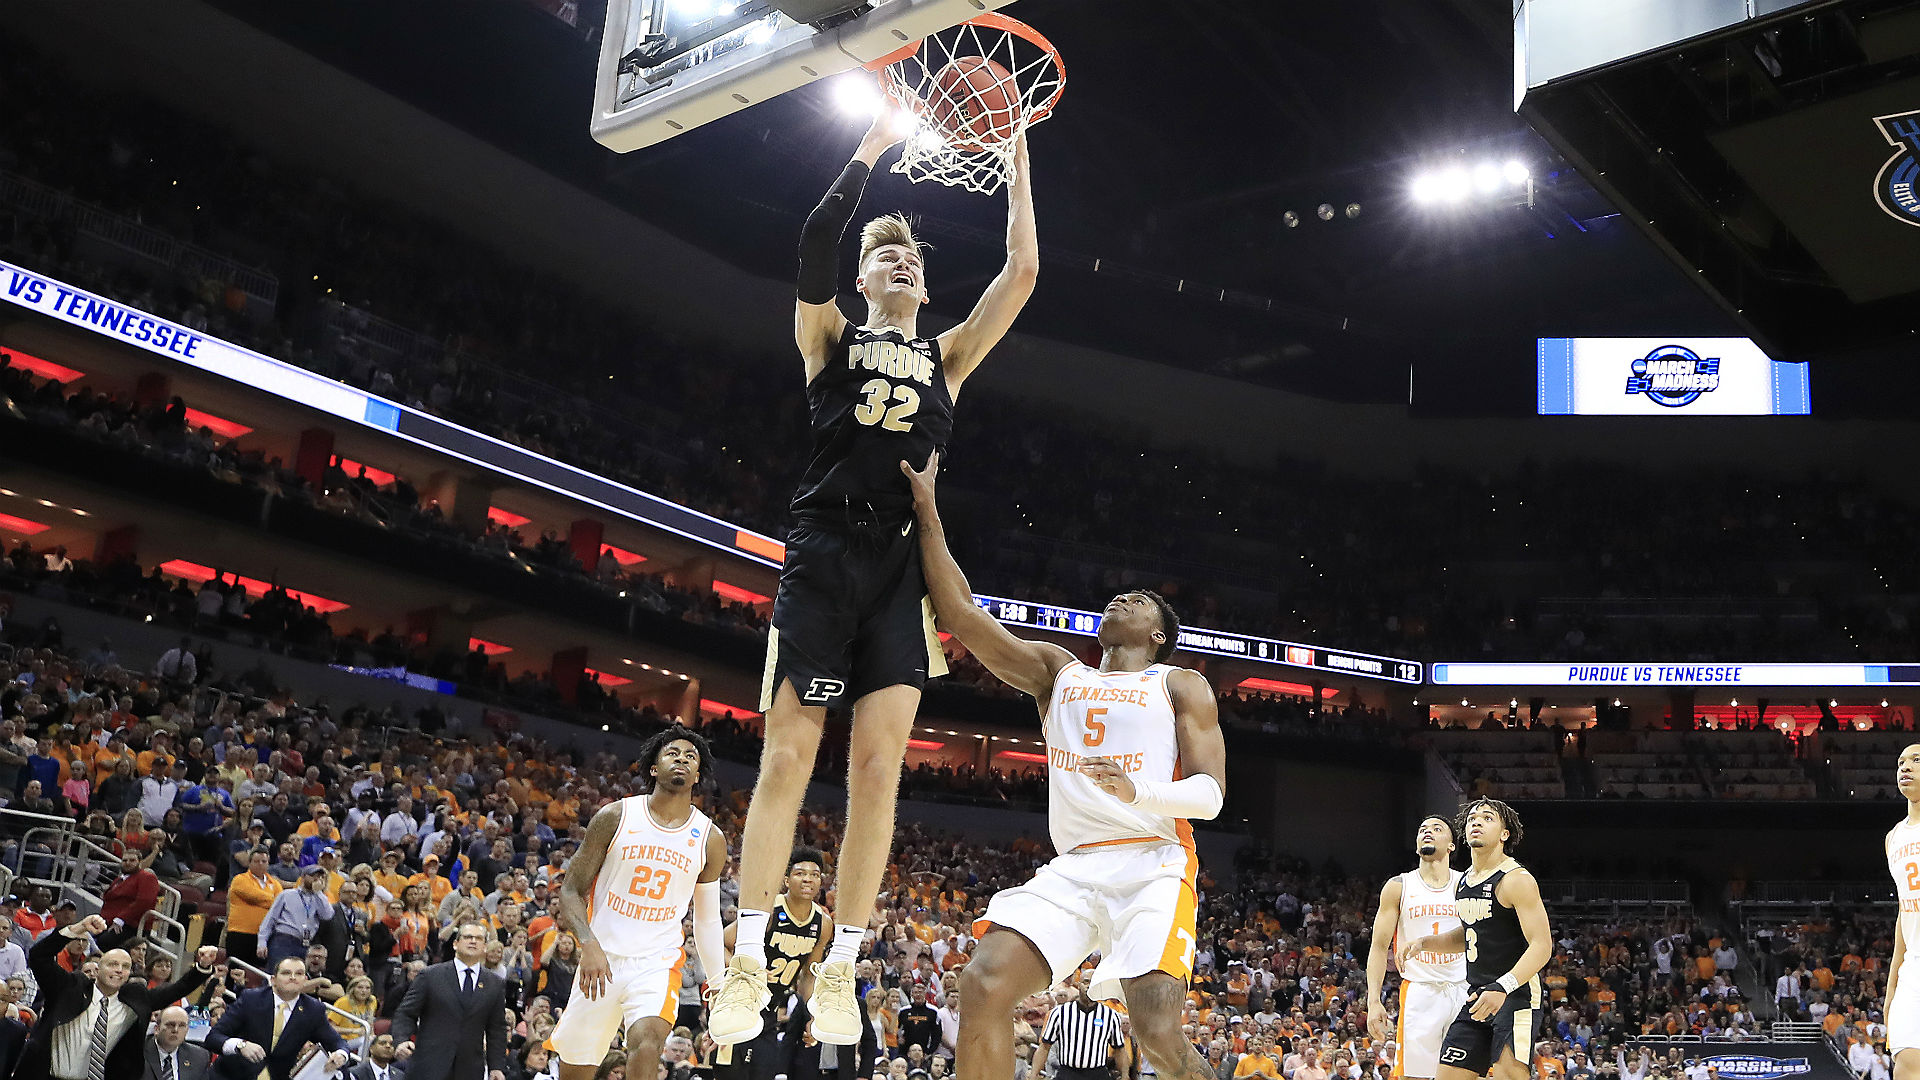 March Madness 2019 Wrap: 4 Teams Punch Their Tickets To